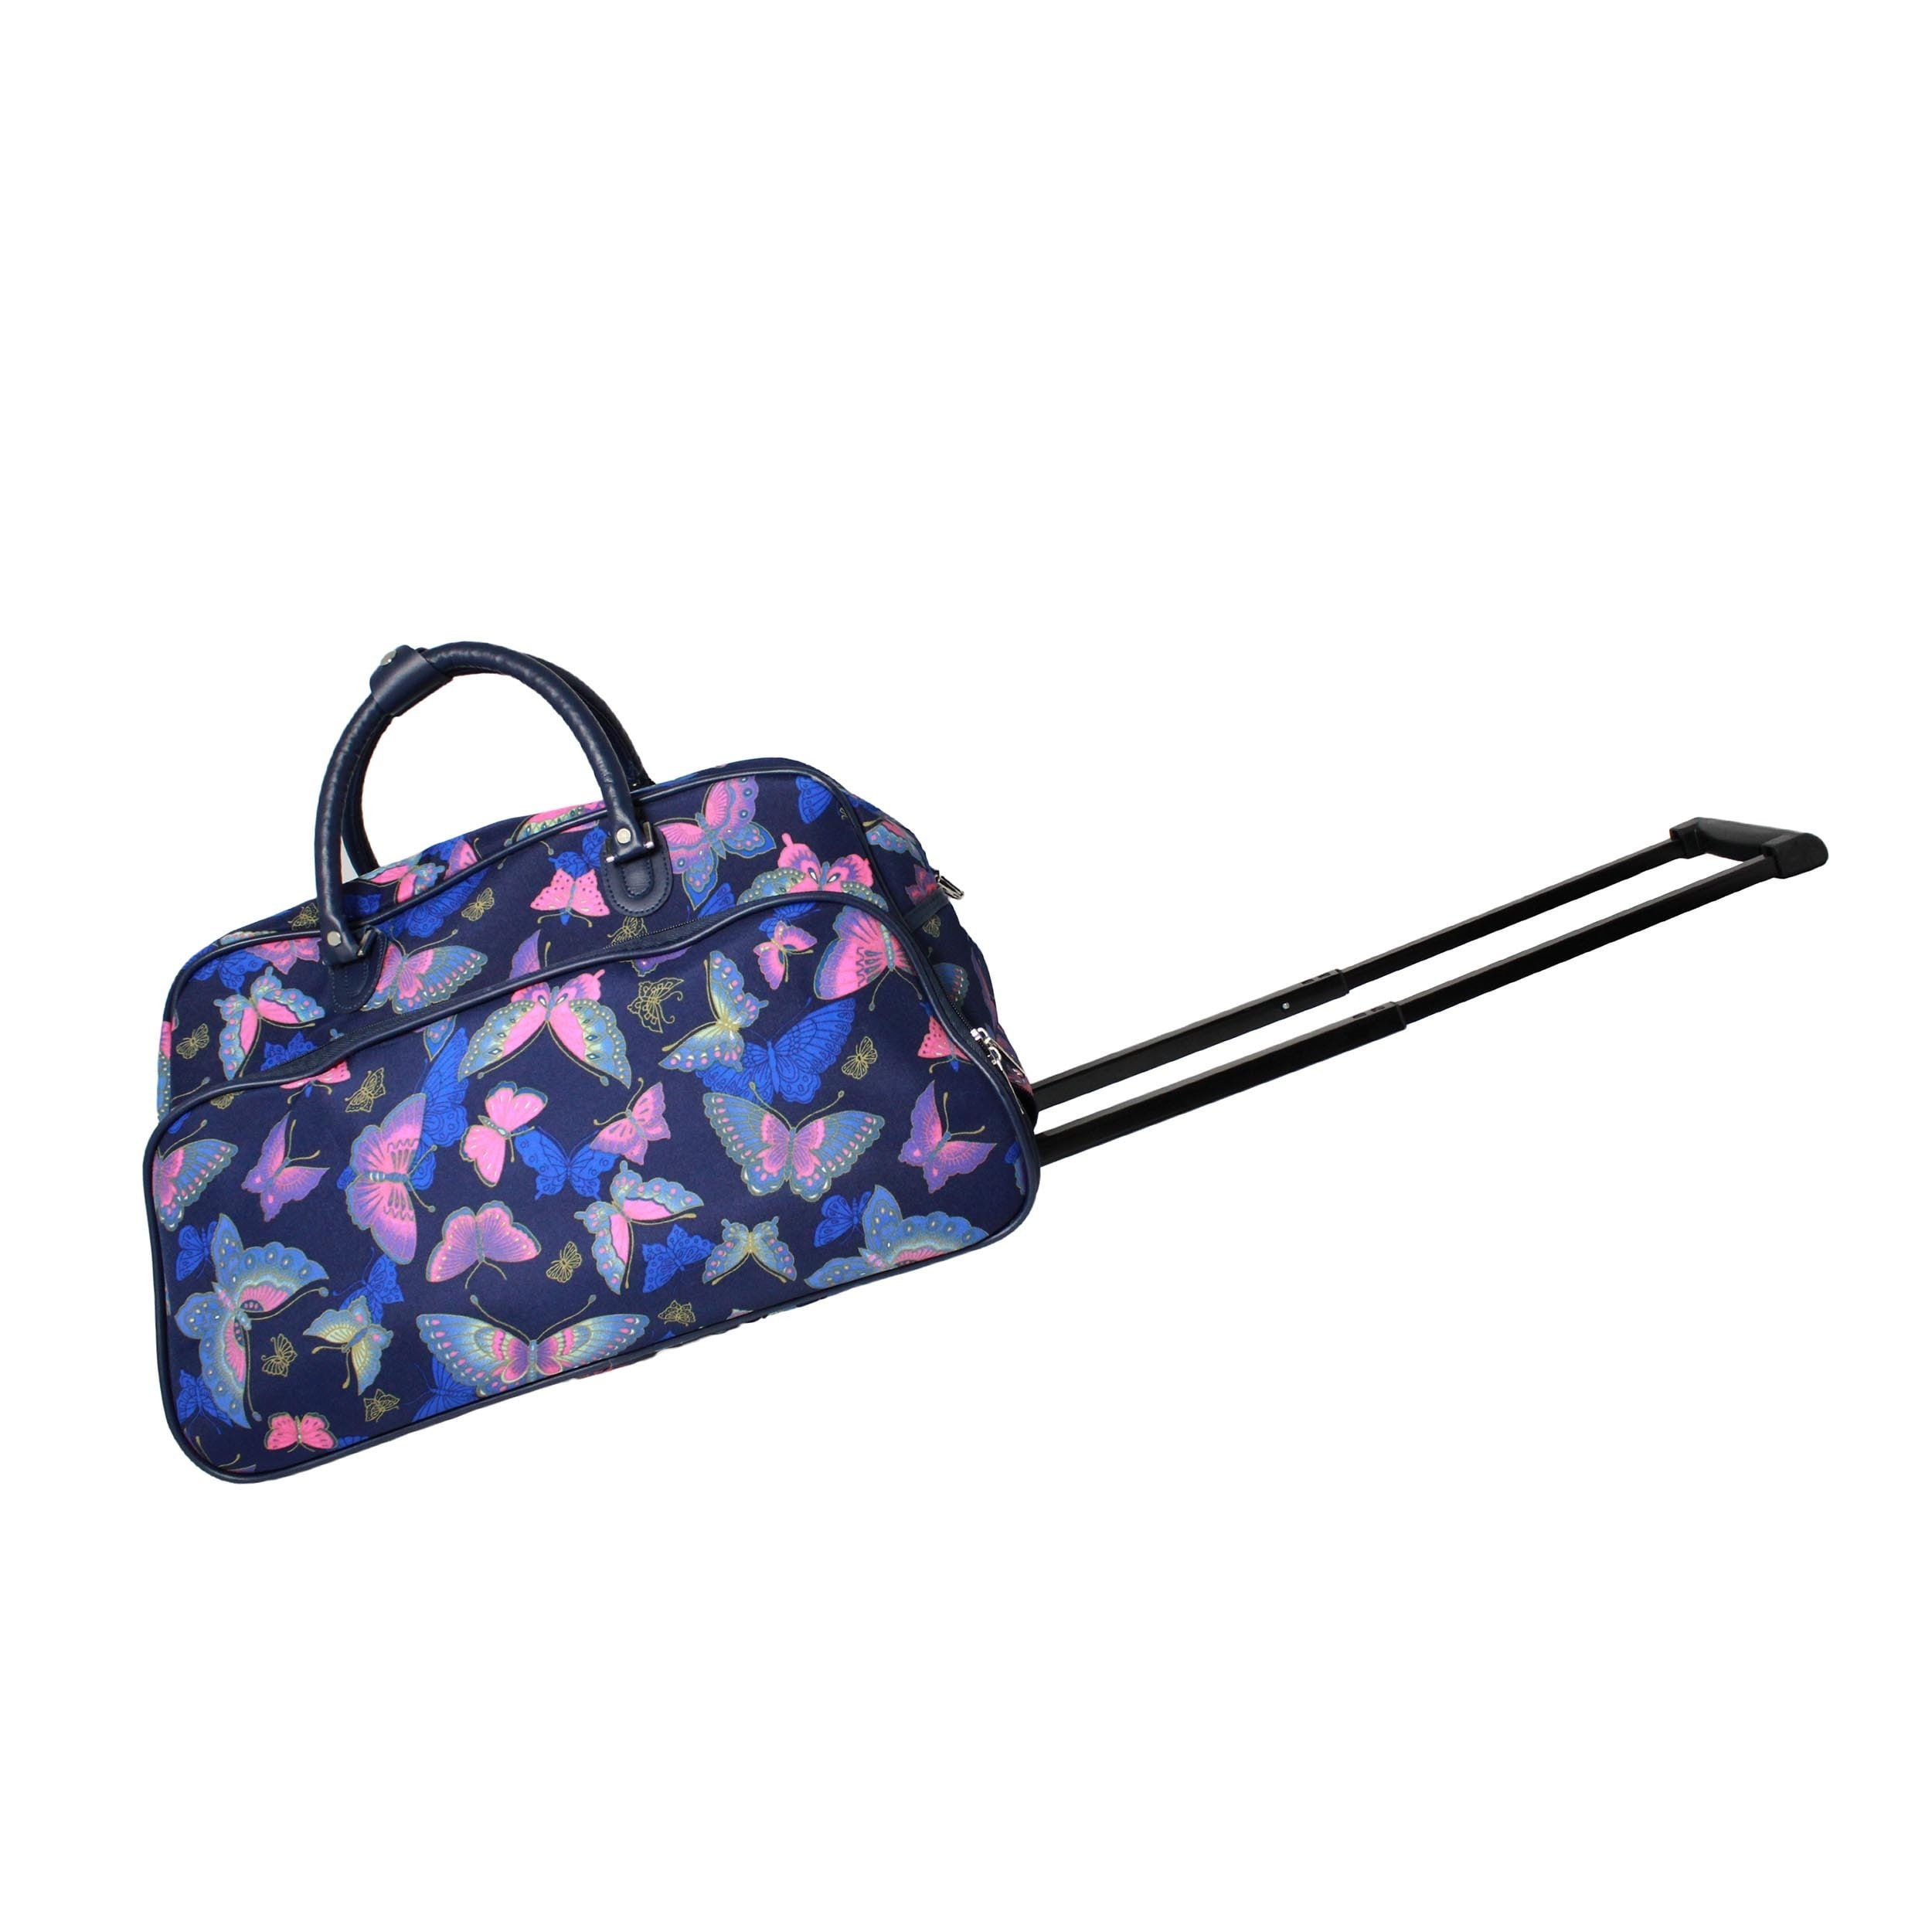 World Traveler Blue Moon Butterfly 21-Inch Carry-On Rolling Duffel Bag 6a7a812cf5